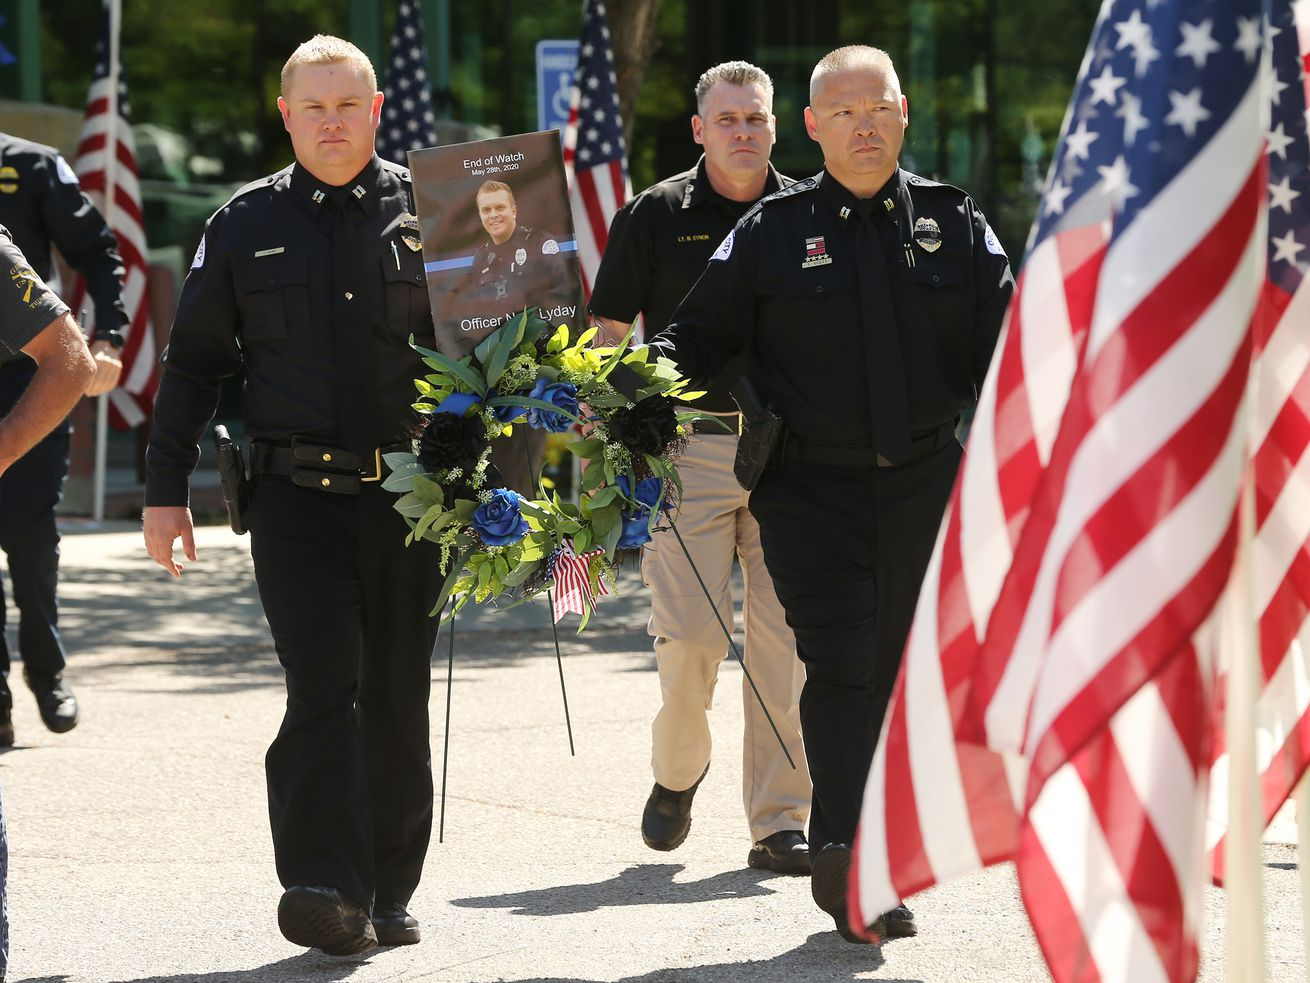 In our opinion: Police officer Nate Lyday laid down his life for his friends